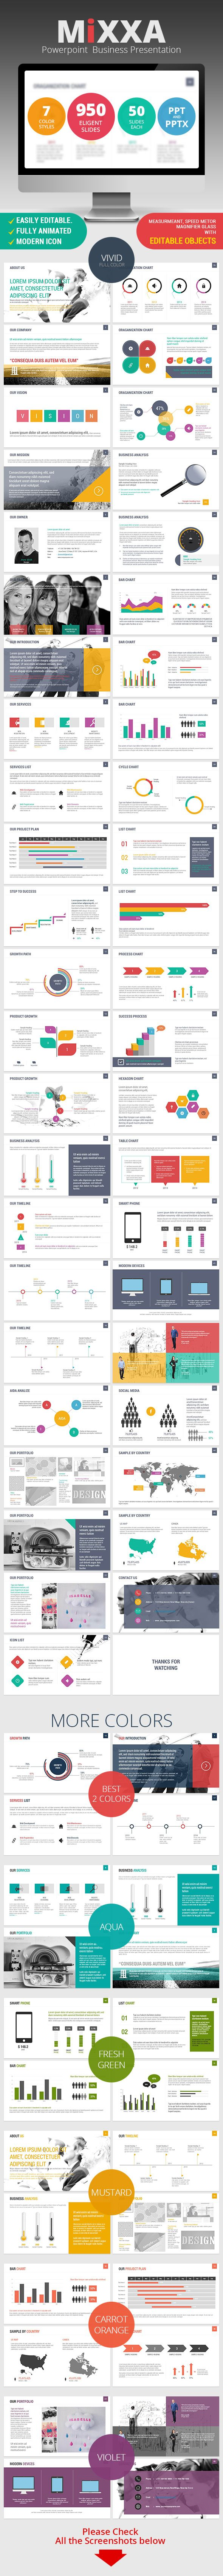 Mixxa Business Powerpoint Presentation - #Business #PowerPoint #Templates Download here: https://graphicriver.net/item/mixxa-business-powerpoint-presentation/8083619?ref=alena994